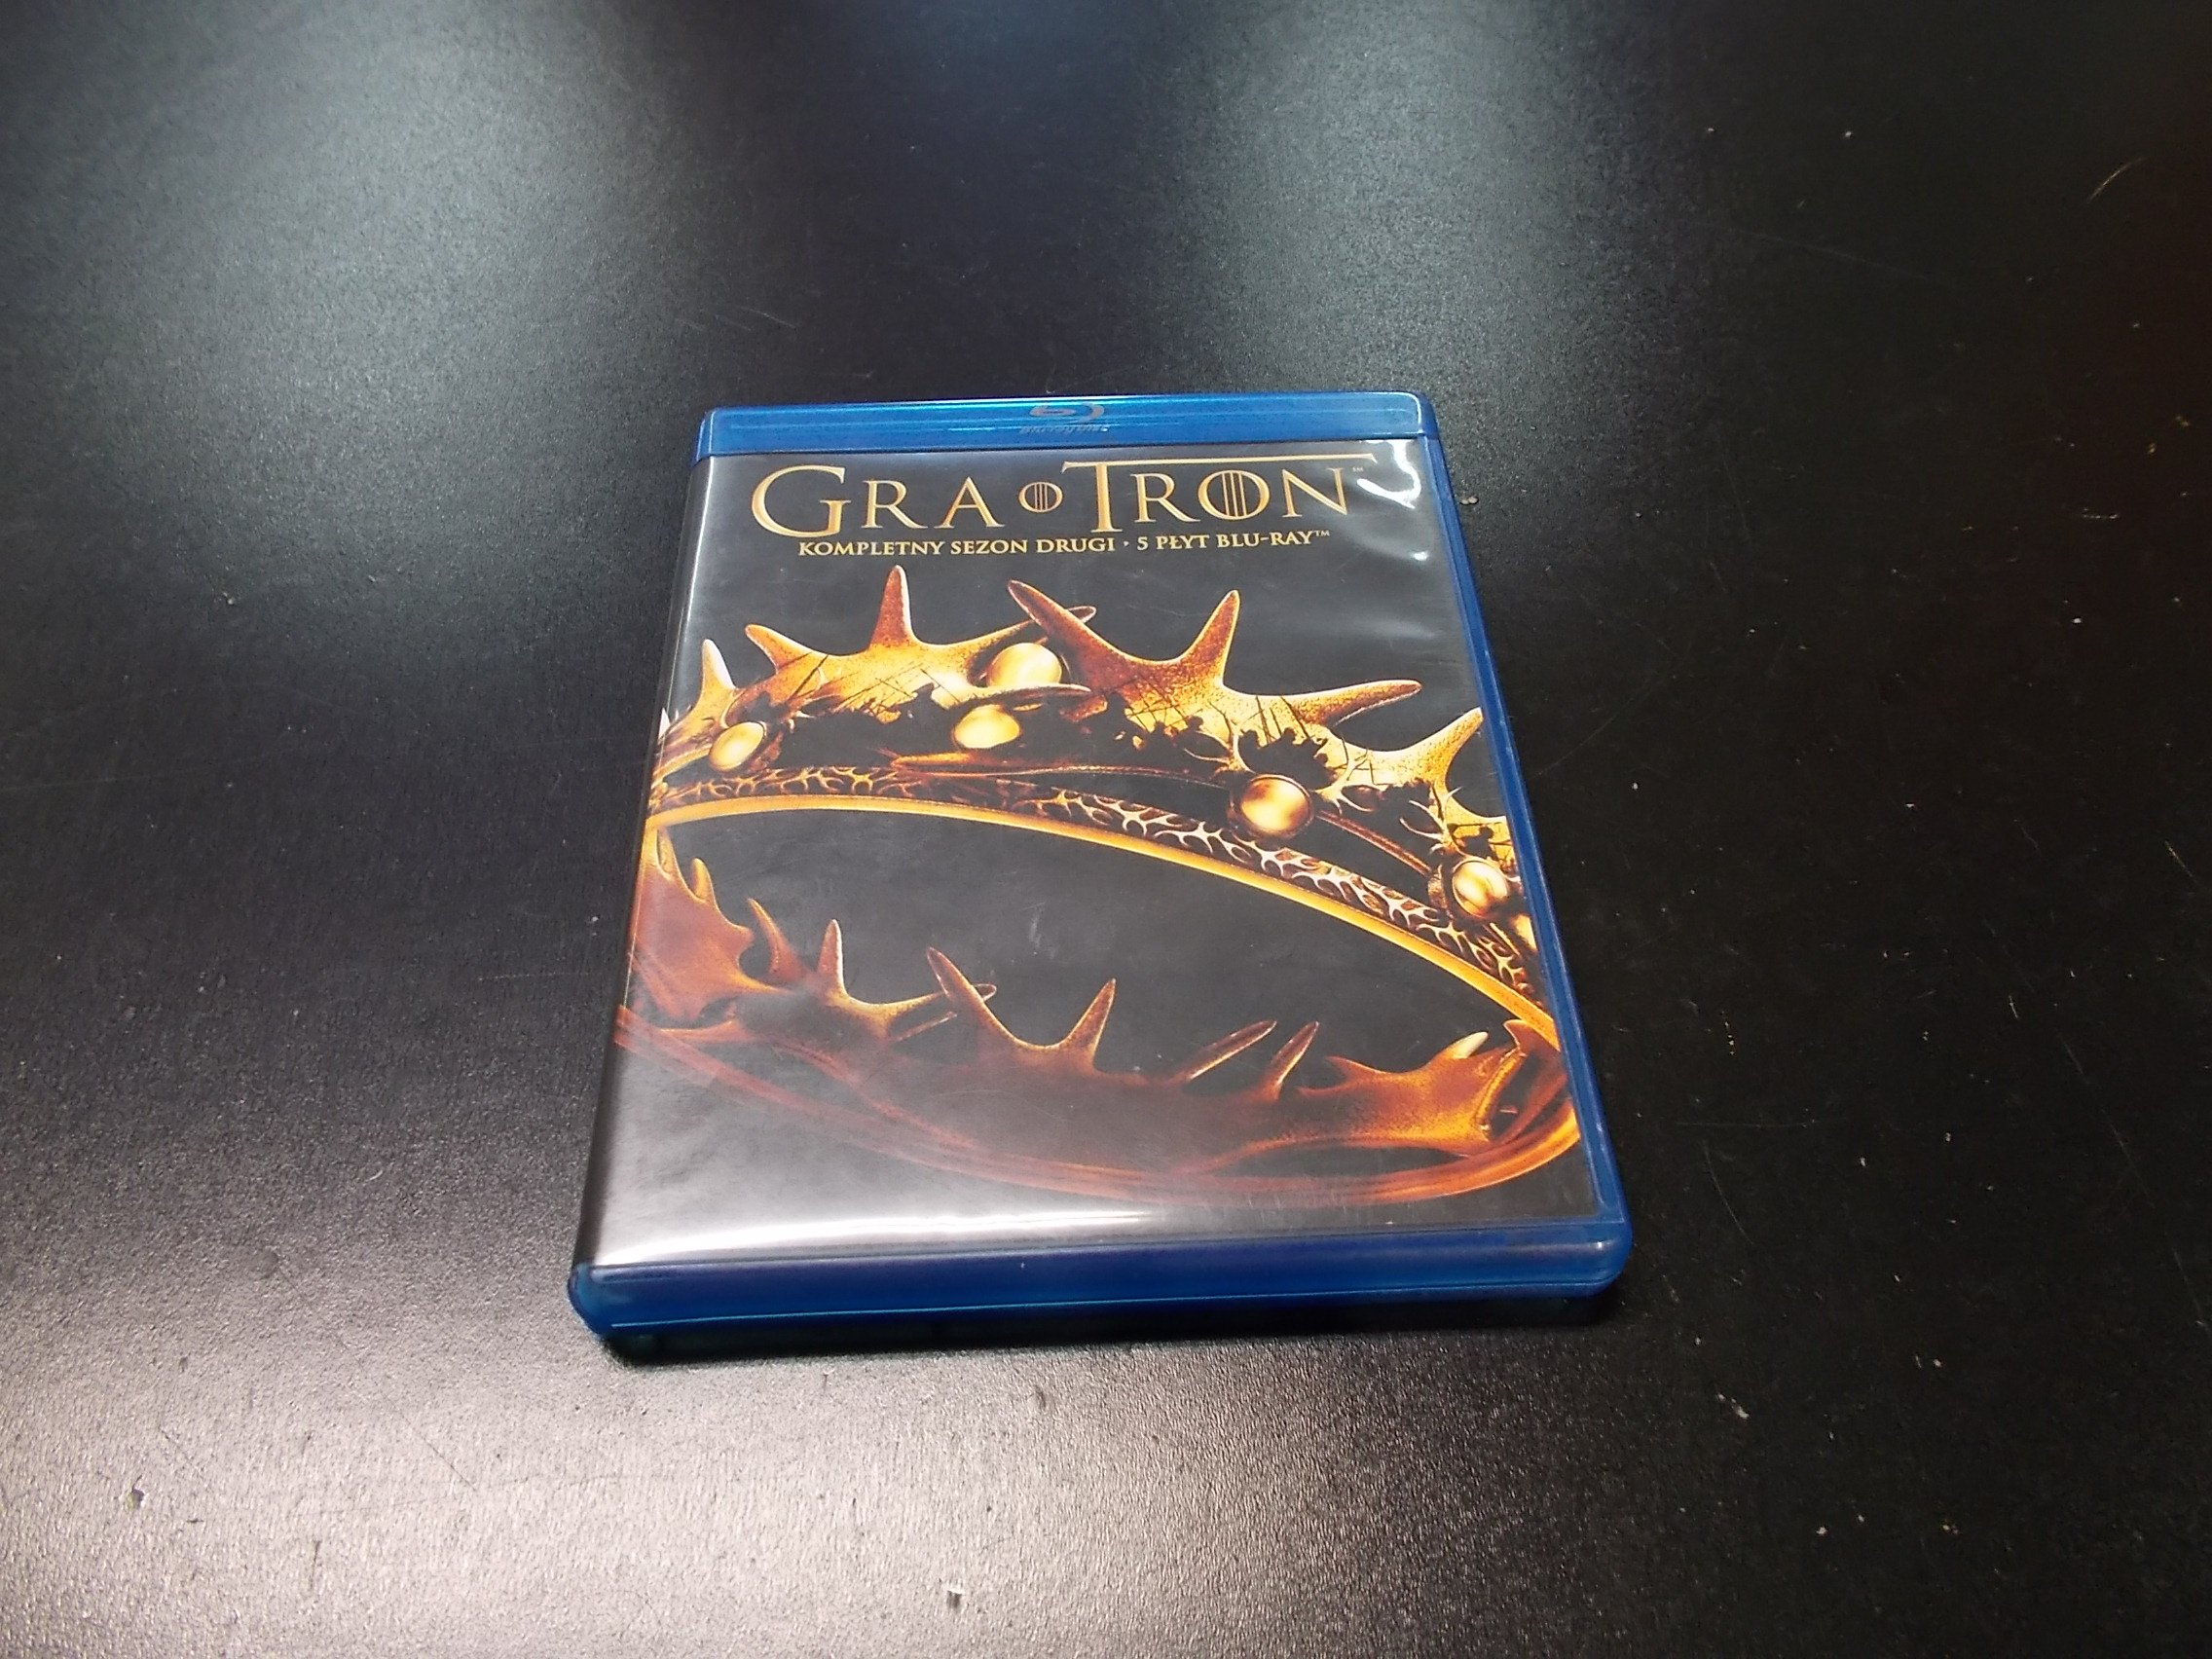 Gra O Tron - Game Of Thrones Sezon 2 PL - 5 Blu-Ray - Sklep